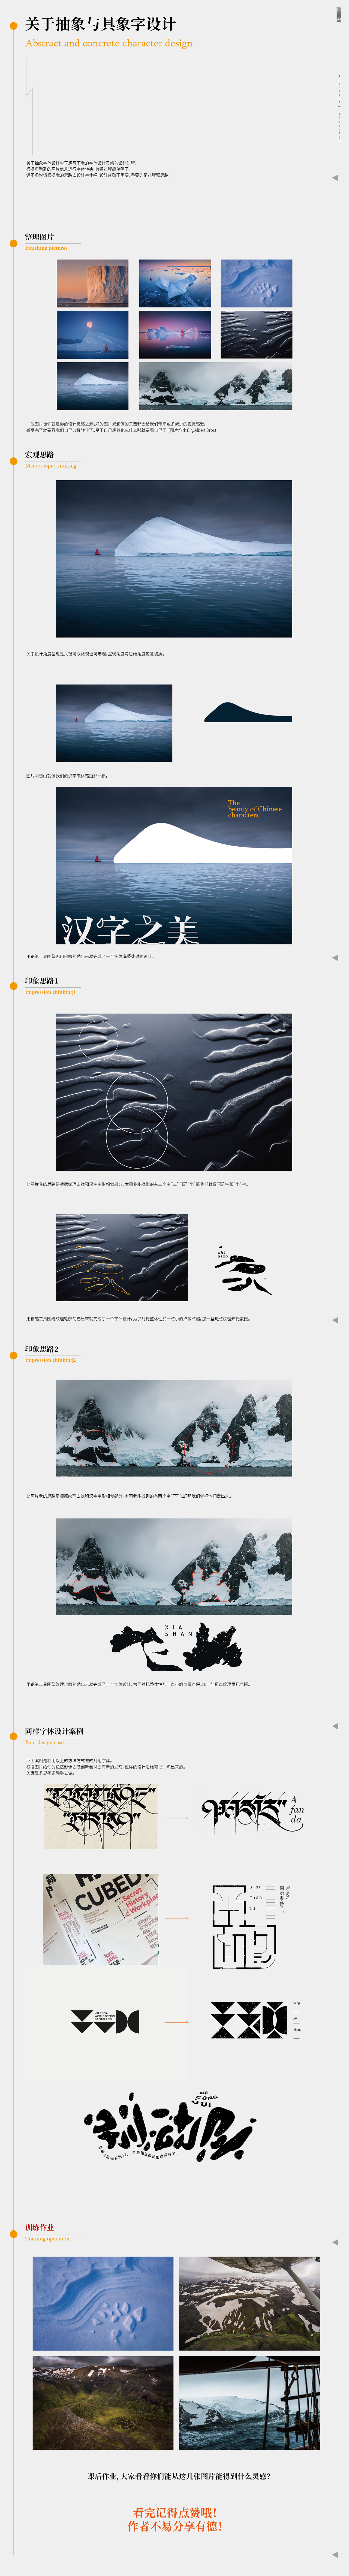 Chinese Creative Font Design-On the Design of Abstract and Concrete Characters